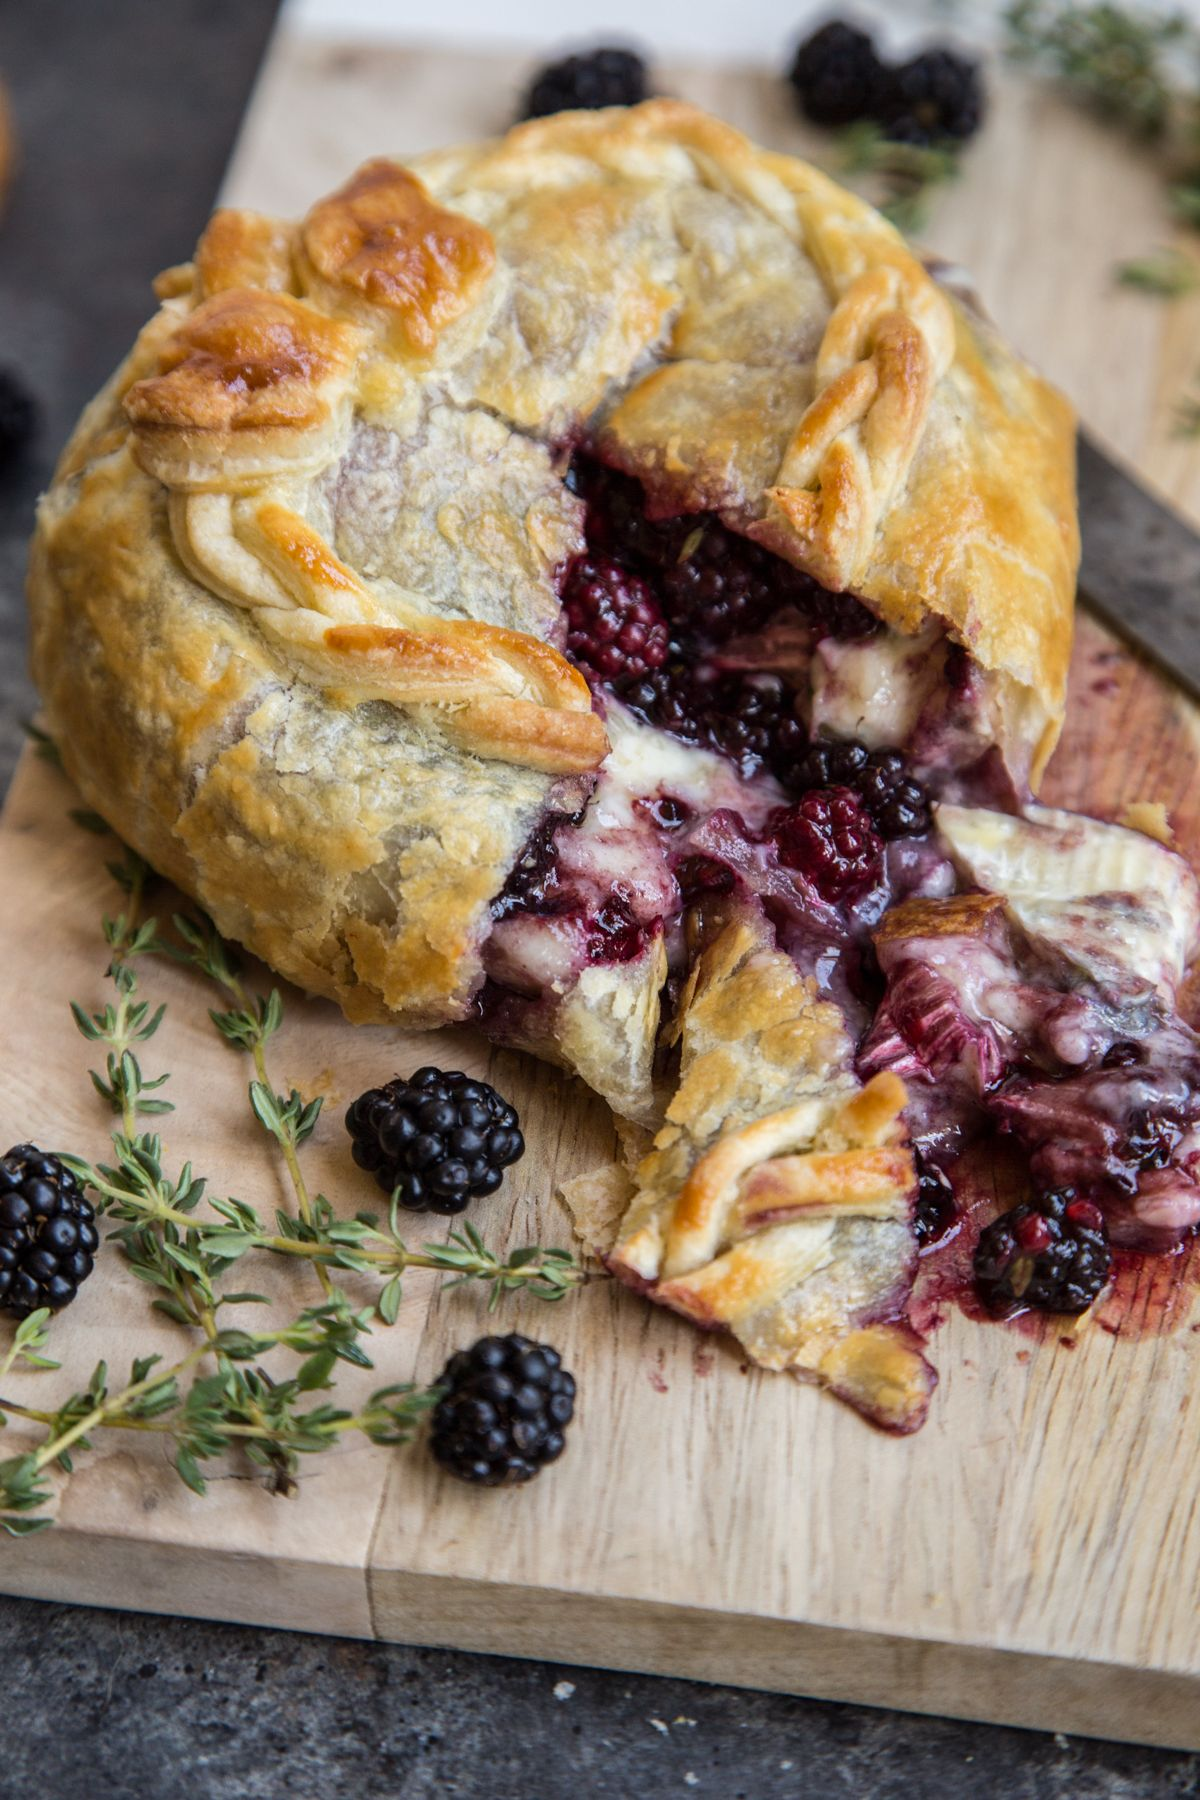 Blackberry Thyme Baked Brie En Croute - Country Cleaver